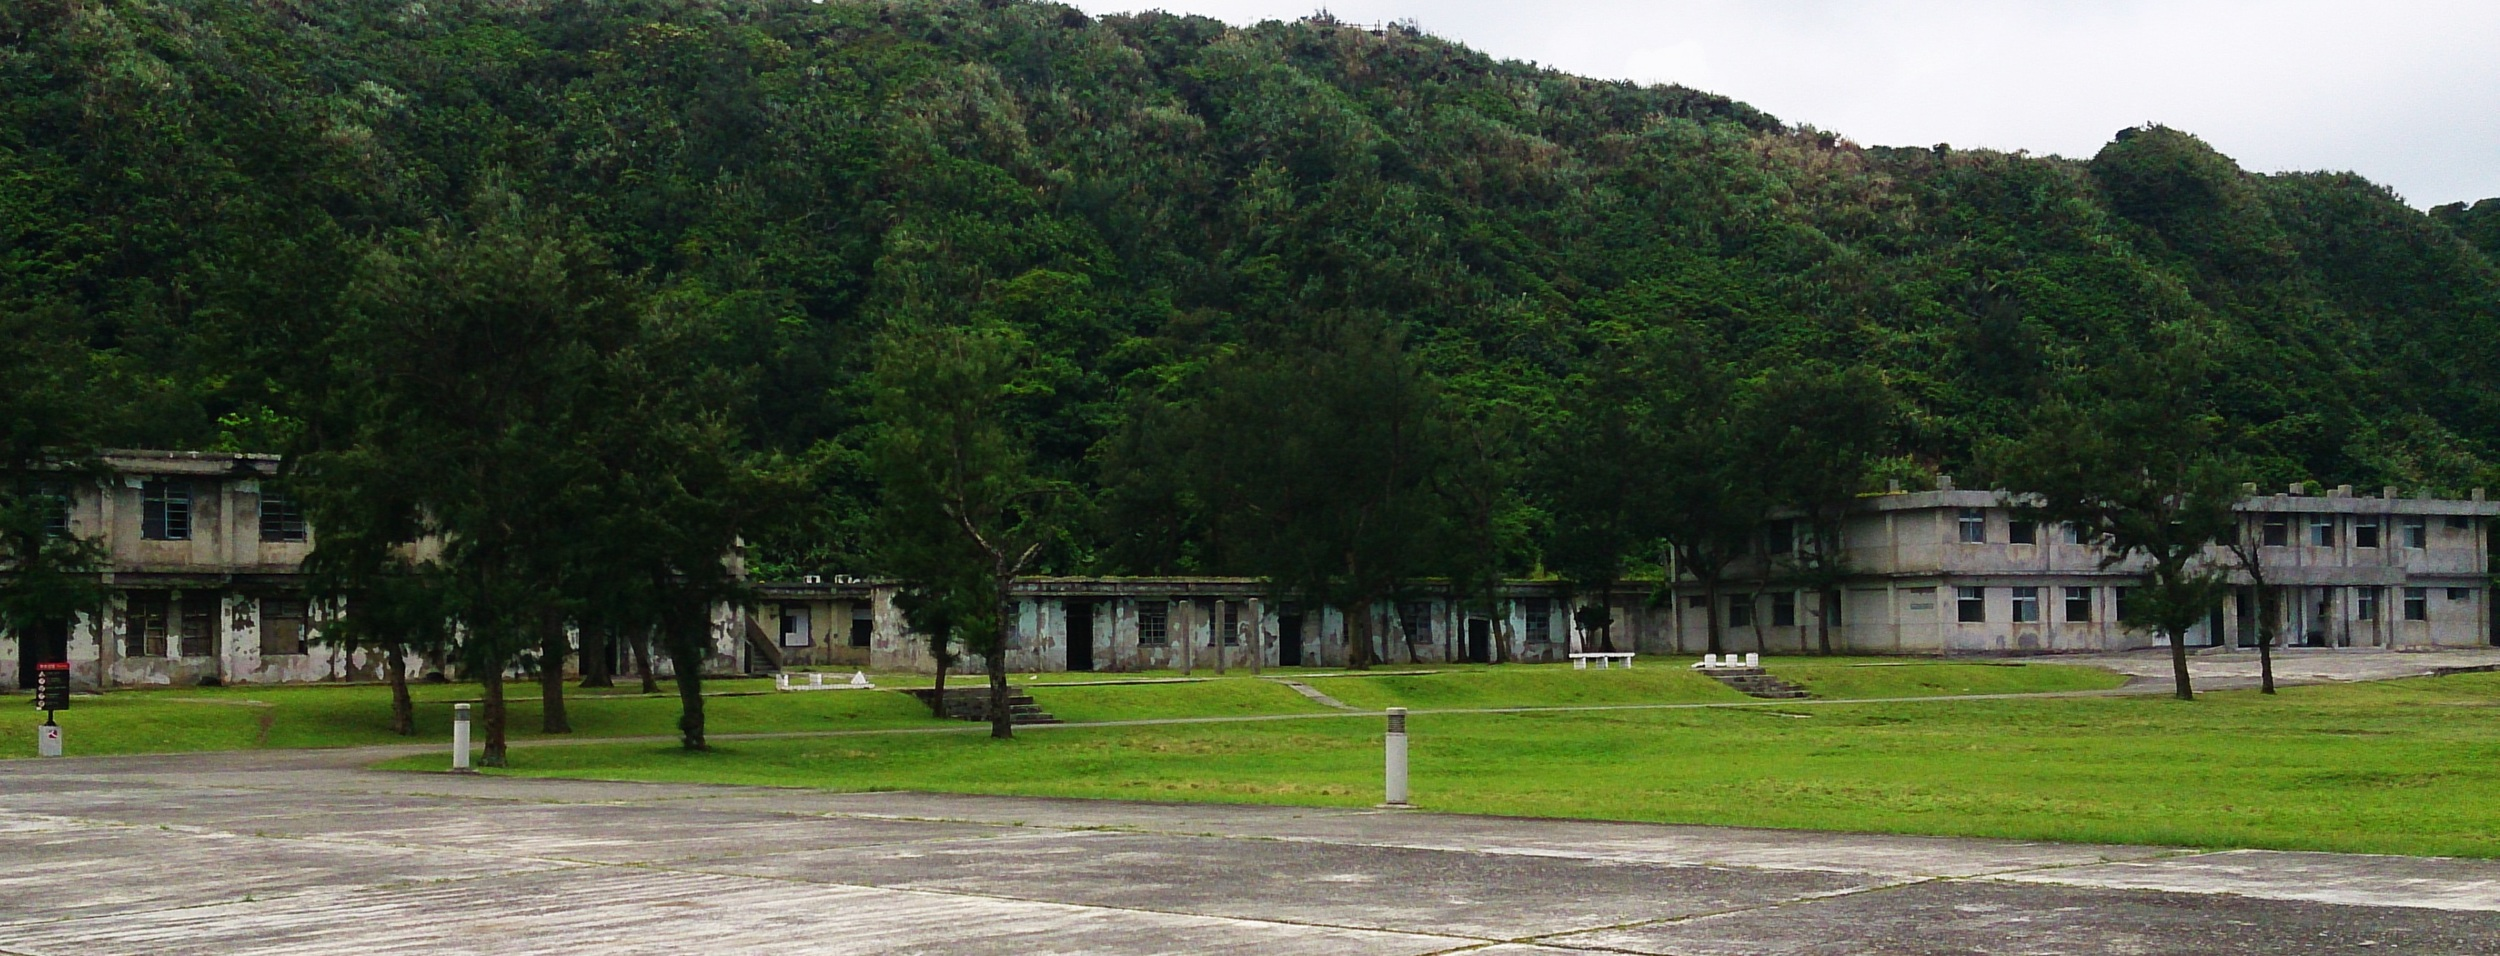 The buildings near the New Life Camp